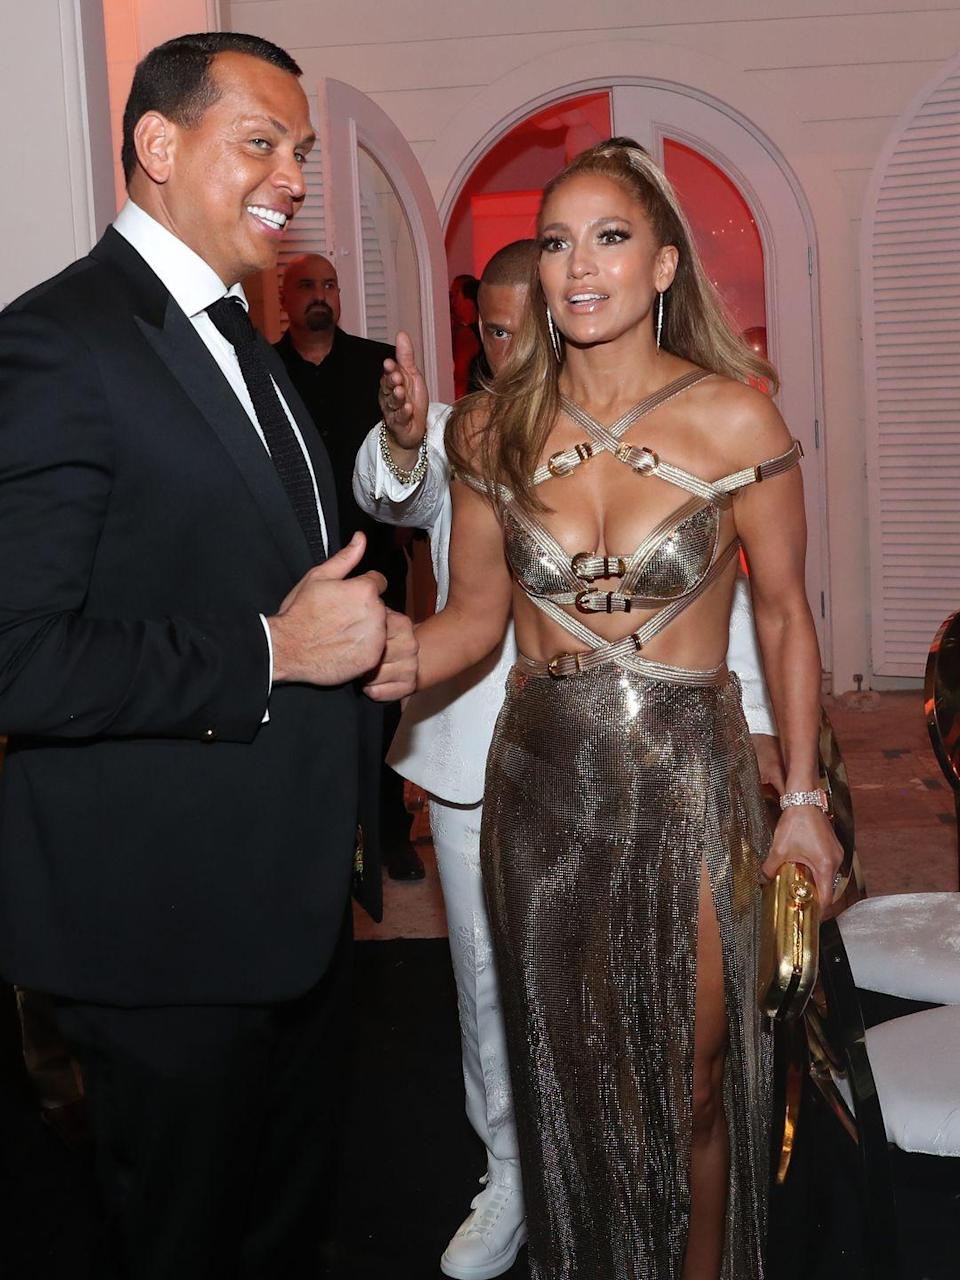 """<p>J.Lo celebrated her <a href=""""http://www.cosmopolitan.com/uk/fashion/celebrity/a28504507/jennifer-lopez-naked-birthday-dress/"""" rel=""""nofollow noopener"""" target=""""_blank"""" data-ylk=""""slk:50th birthday"""" class=""""link rapid-noclick-resp"""">50th birthday</a> wearing the sexiest gold strap dress, with buckle details and a generous amount of sexy cut-outs. Alex Rodriguez was, of course, present for the occasion, and holy crap, I can't get over how fierce Jen looks.</p>"""